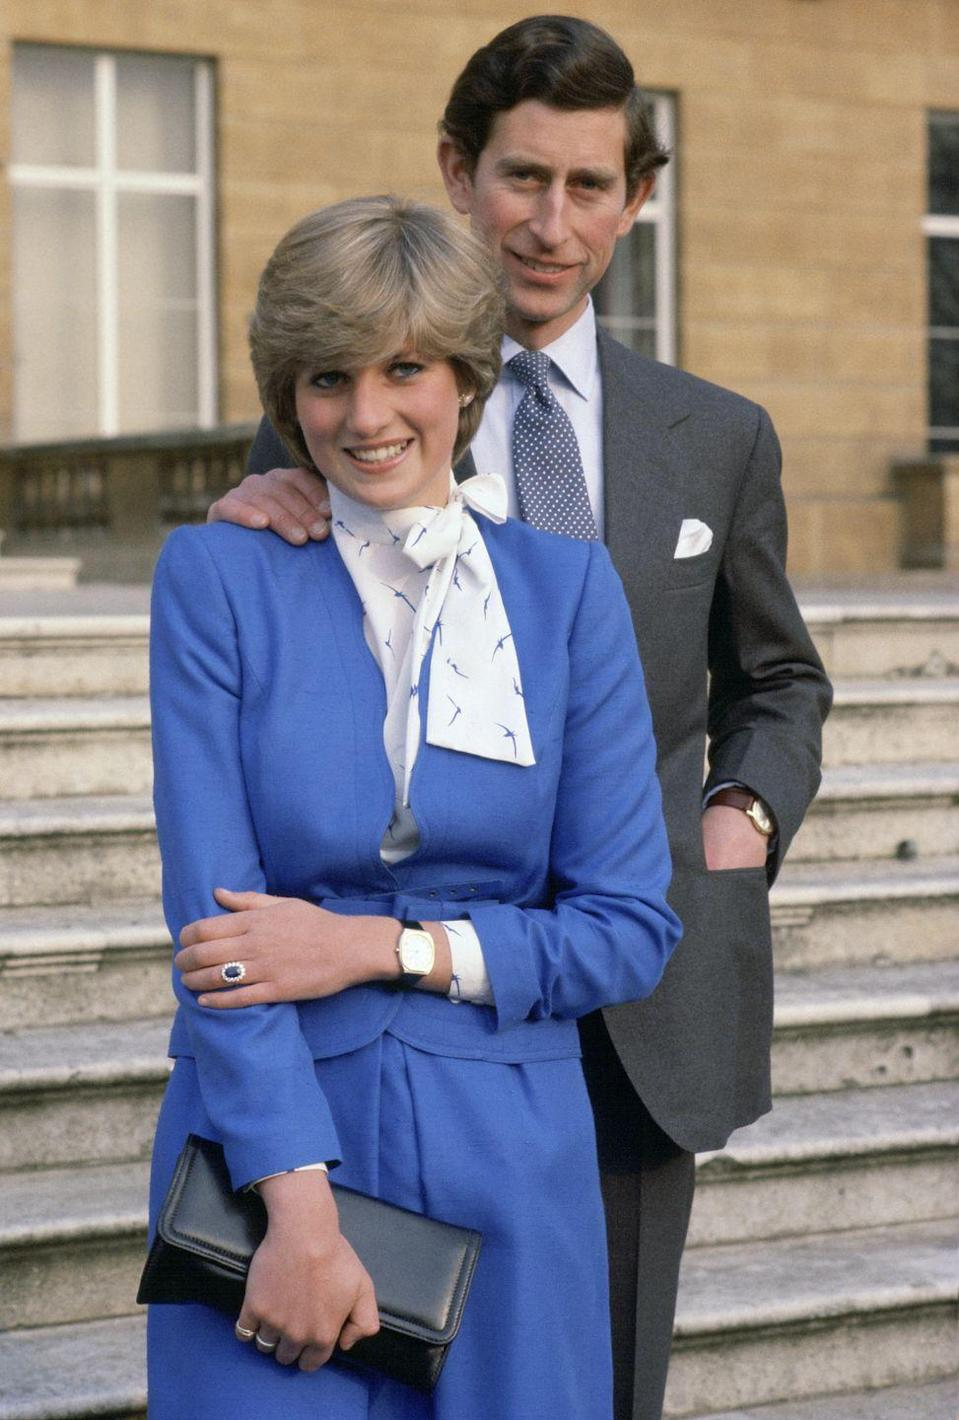 <p>Charles chose to wear a grey suit, blue and white polka dot tie, light blue button-down, and a white handkerchief. </p>